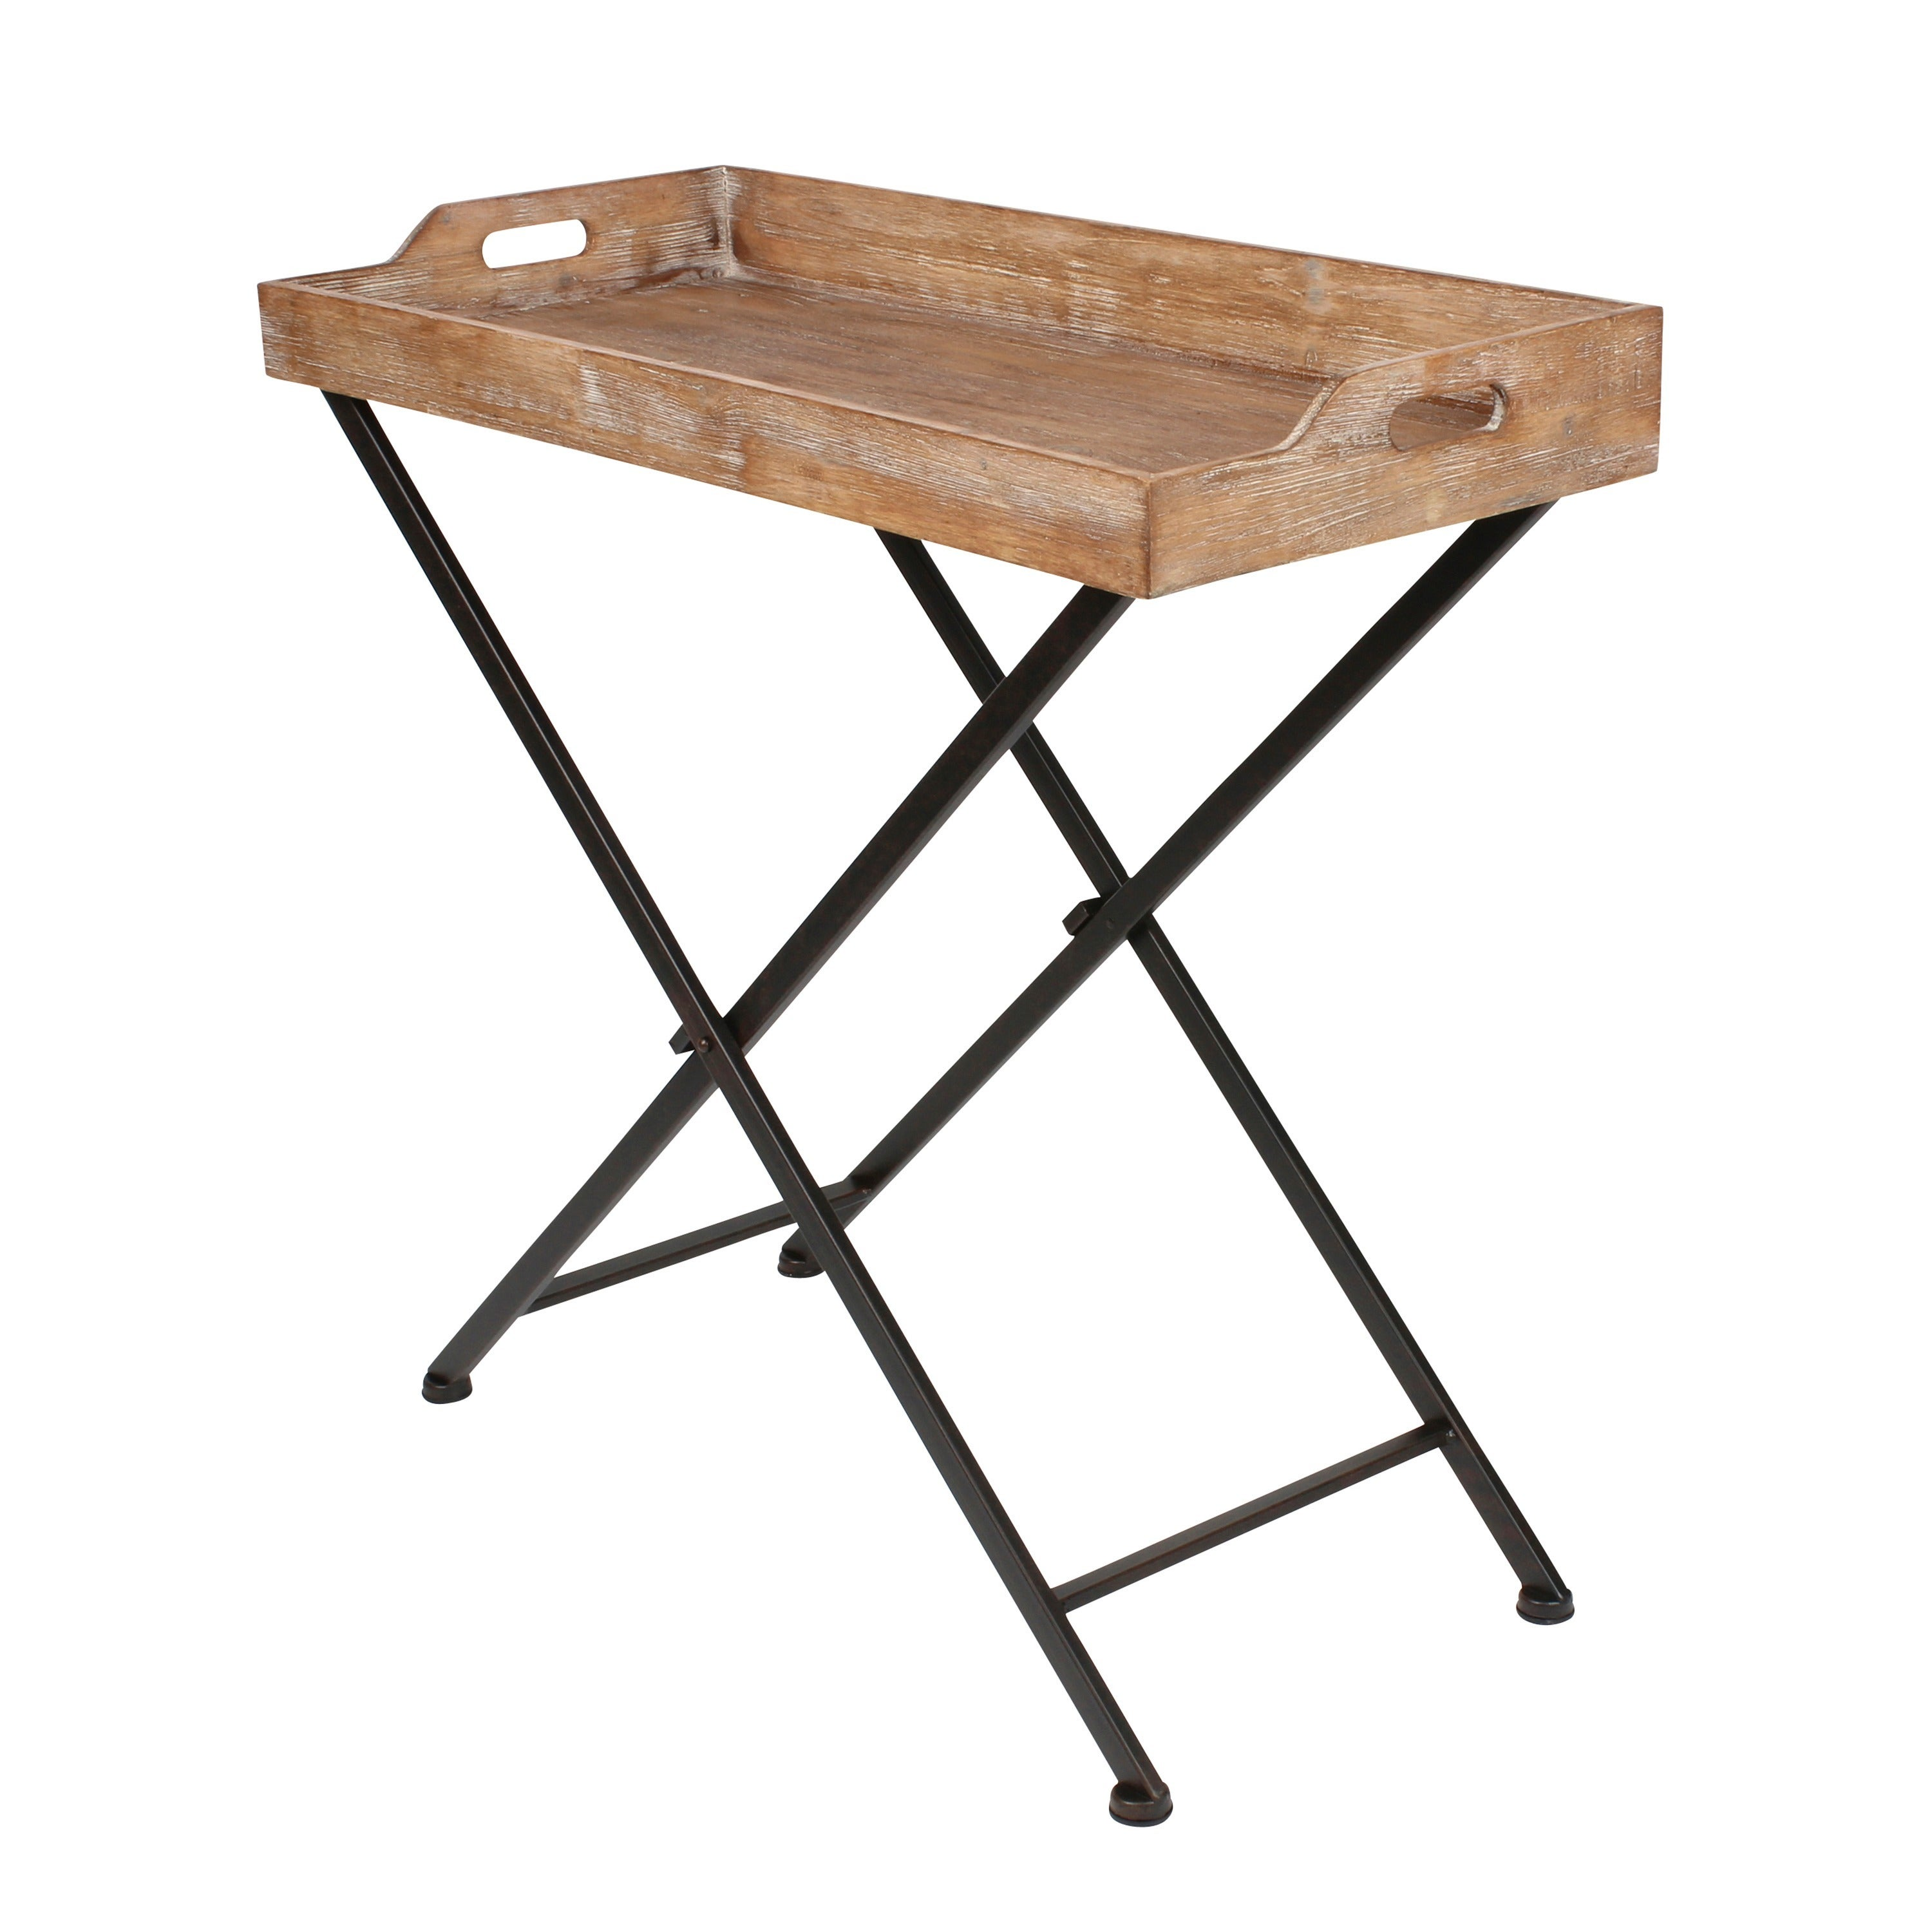 simple four saving wood folding table within sizing set bamboo chairs setting design india and x furniture wooden space trendy